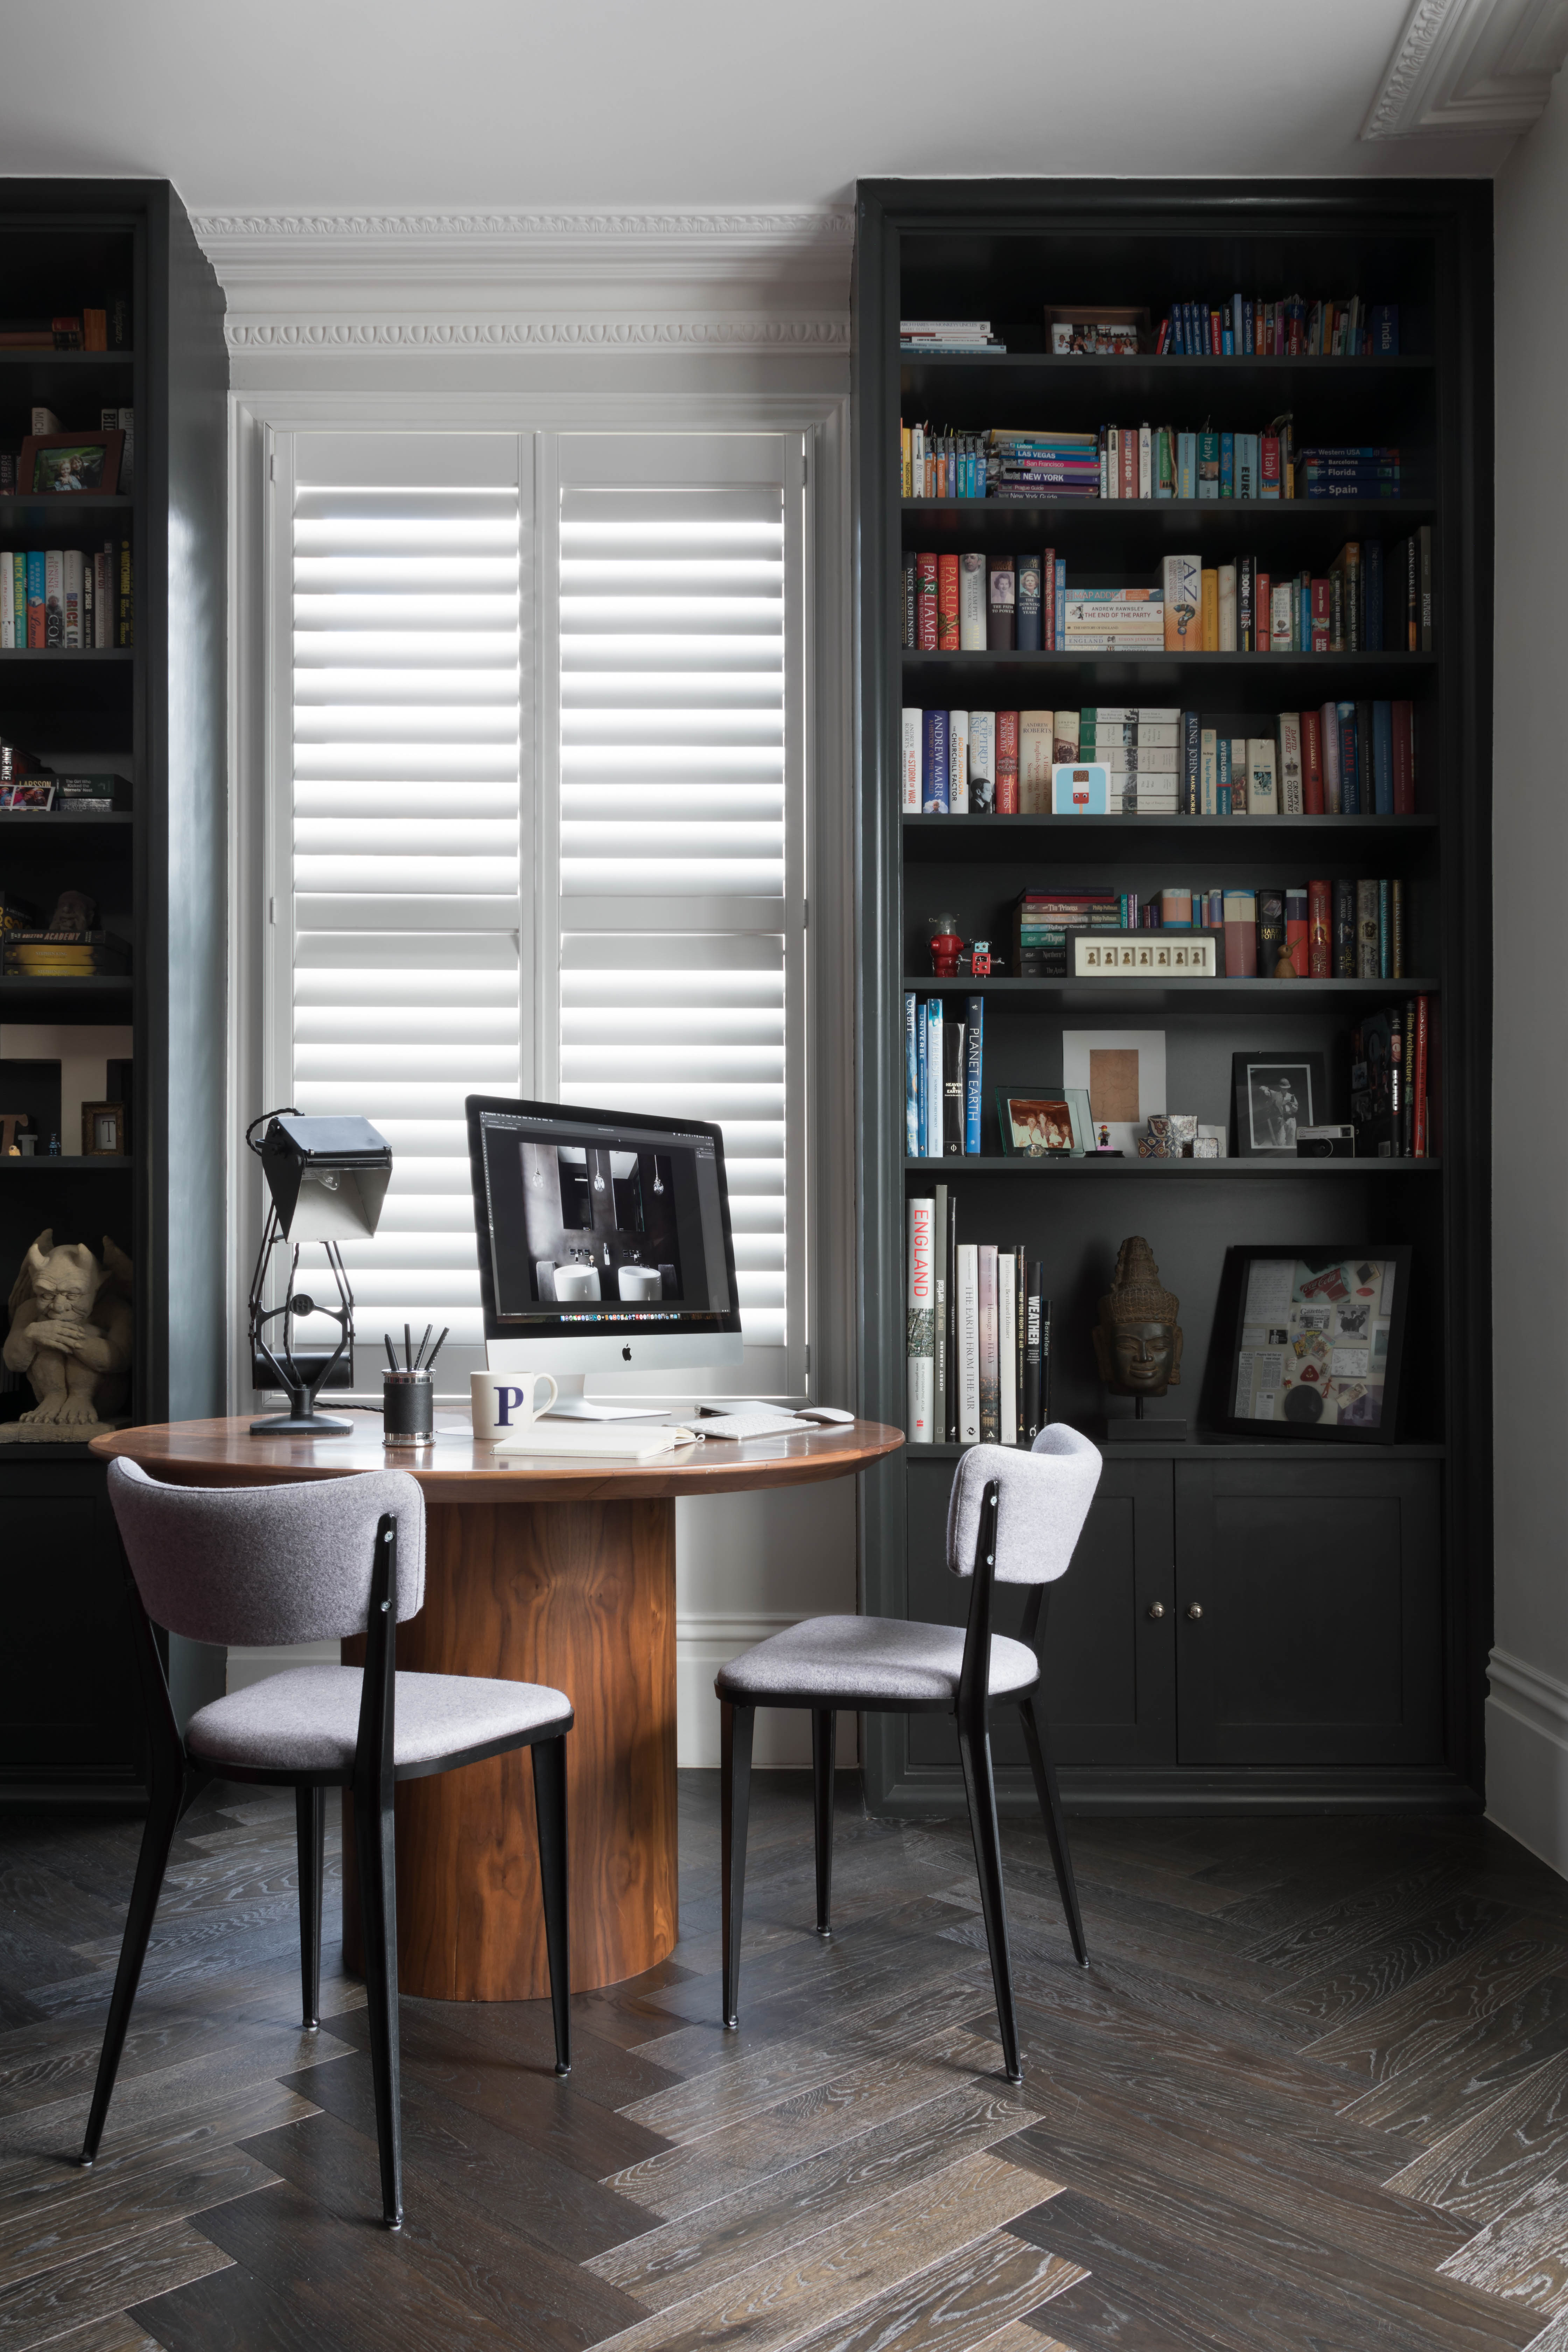 Paul Craig, Interior Photographer, Residential Photography, London, Library, Home Office